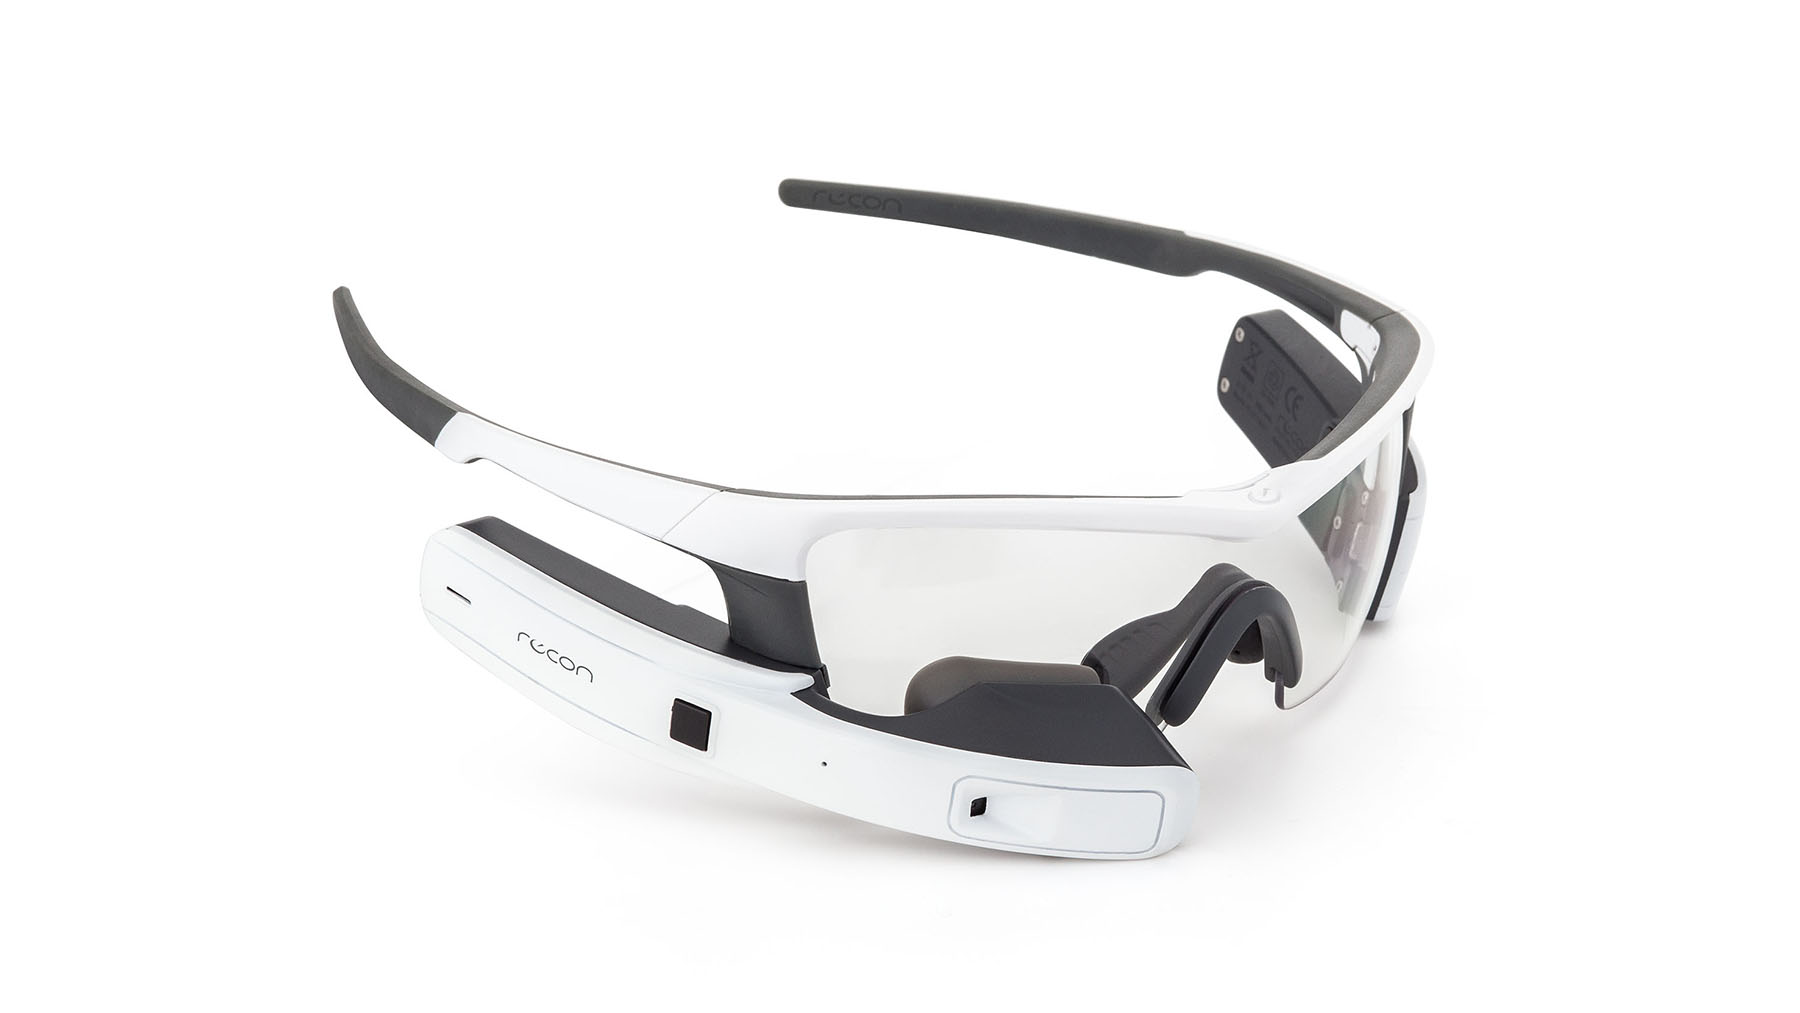 Recon Instruments Launches Recon Jet Smart Eyewear for Your Active Lifestyle